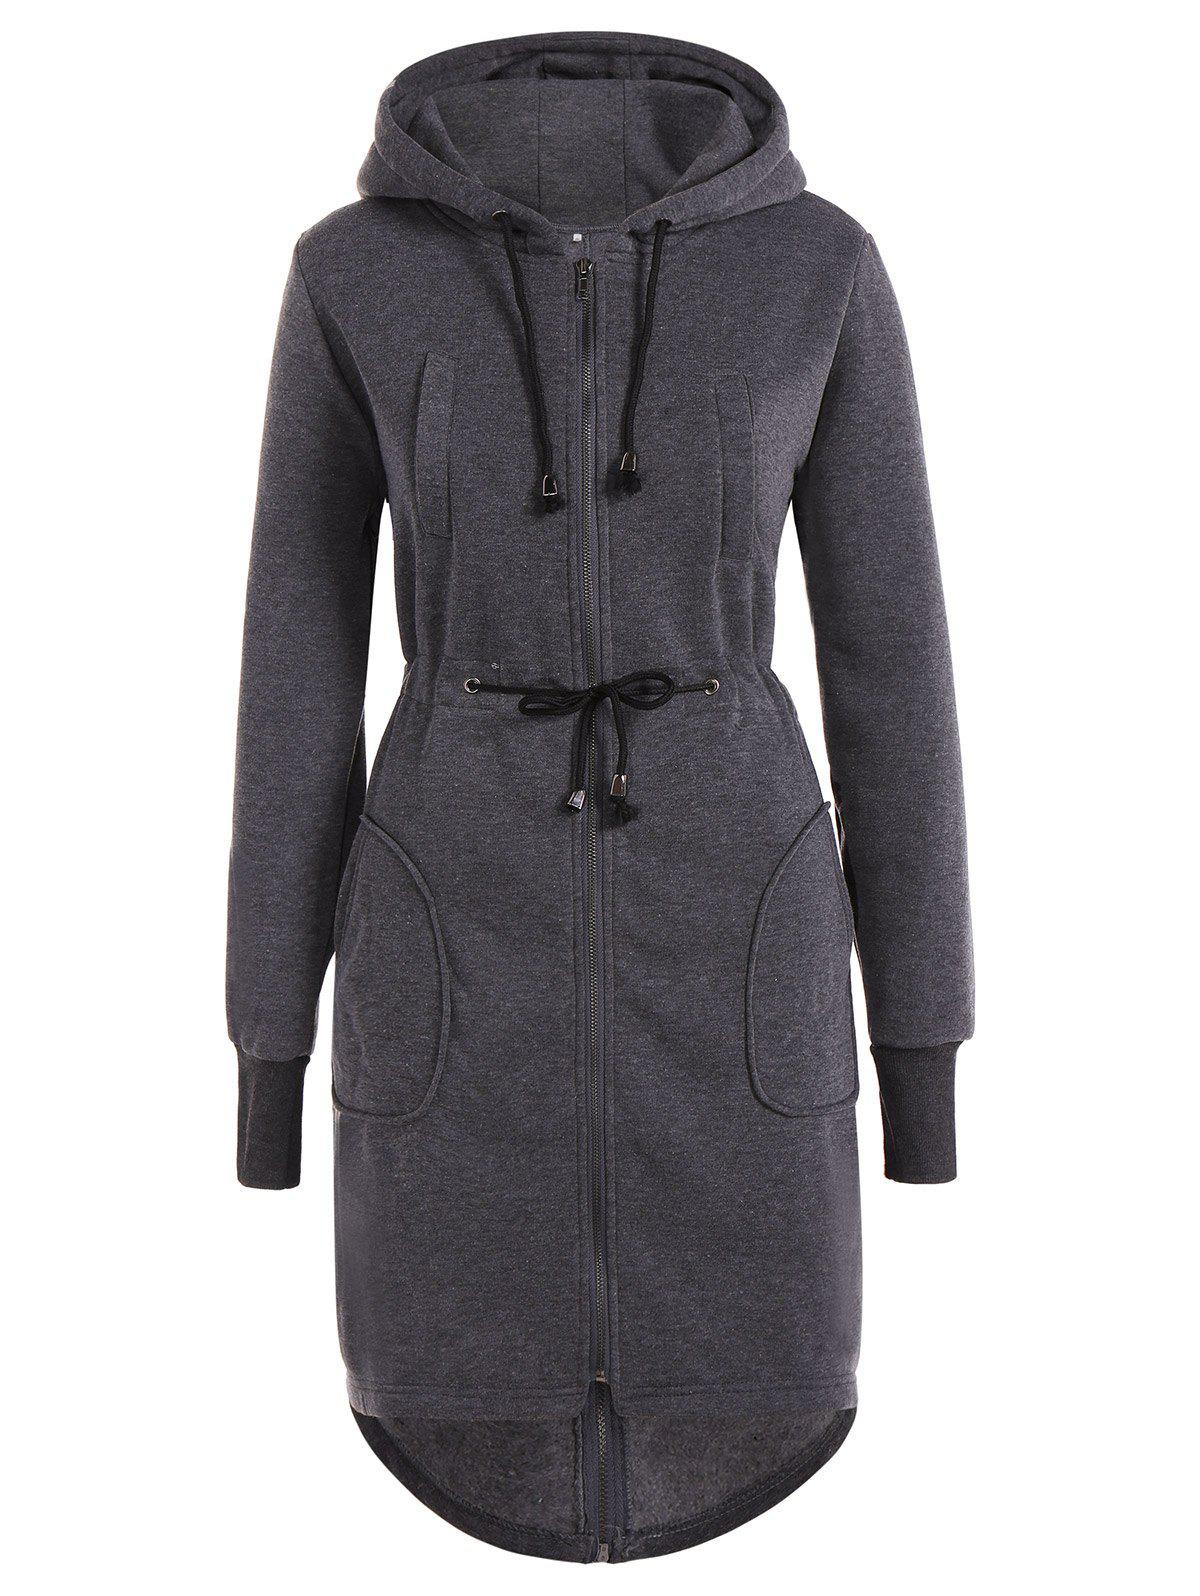 Drawstring Hooded Coat with PocketsWOMEN<br><br>Size: L; Color: GRAY; Clothes Type: Wool &amp; Blends; Material: Polyester; Type: Slim; Shirt Length: Long; Sleeve Length: Full; Collar: Hooded; Pattern Type: Solid; Embellishment: Zippers; Style: Casual; Season: Fall,Spring; Weight: 0.720kg; Package Contents: 1 x Coat;